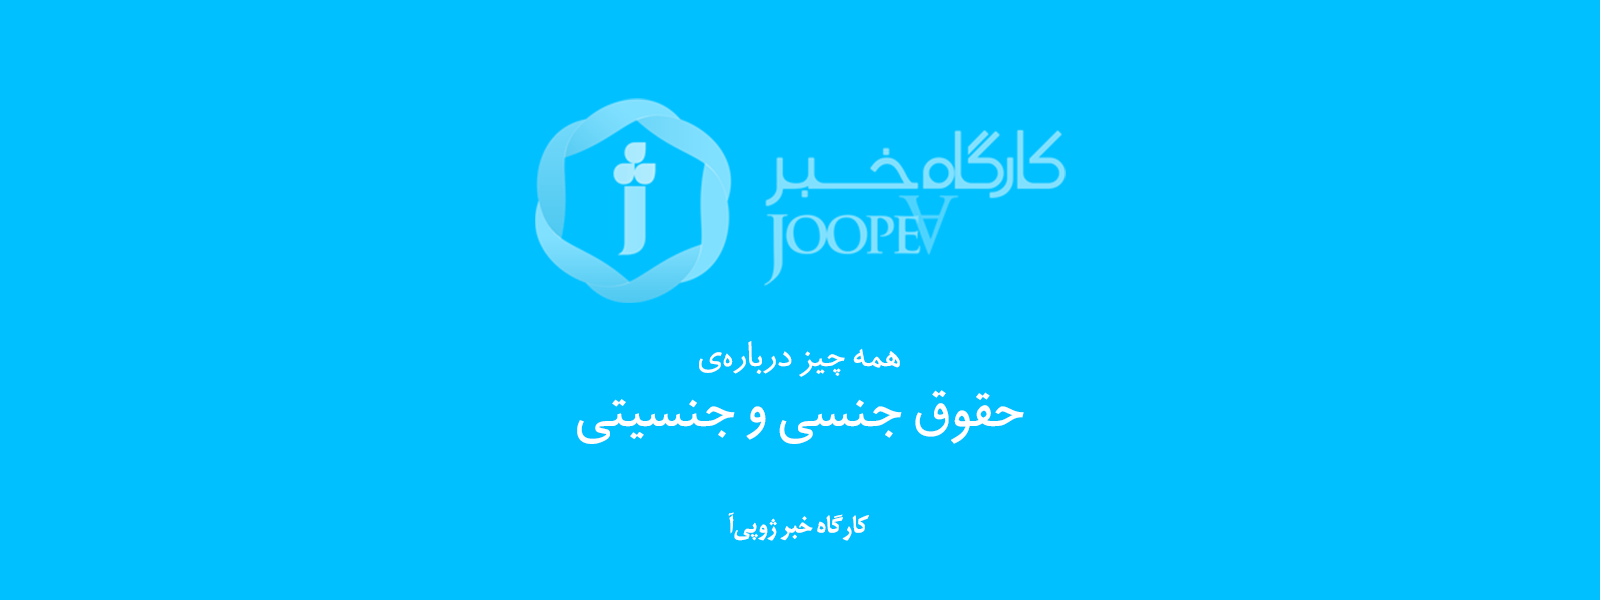 JoopeA News: All reliable info on Sexual Rights in Persian